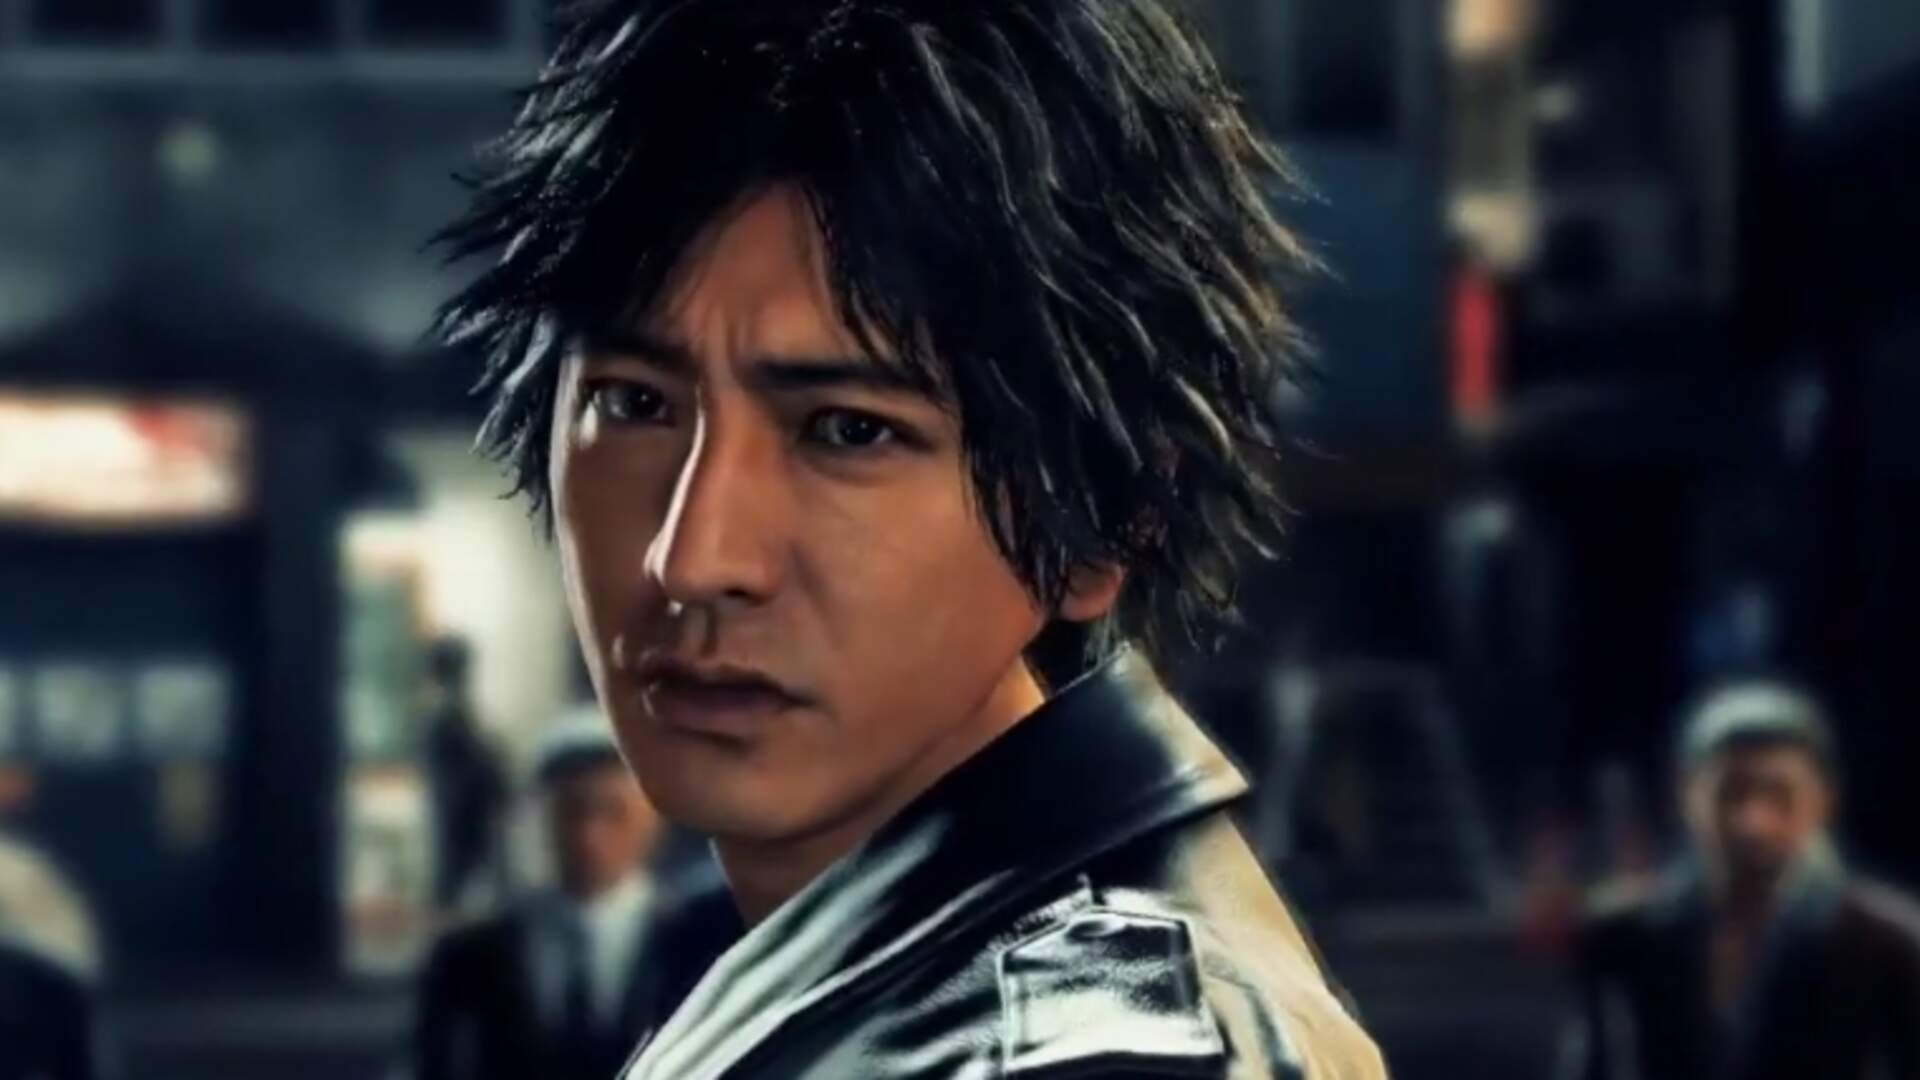 Judge Eyes Now Called Judgment, Will be Fully Dubbed When it Comes West in Summer 2019